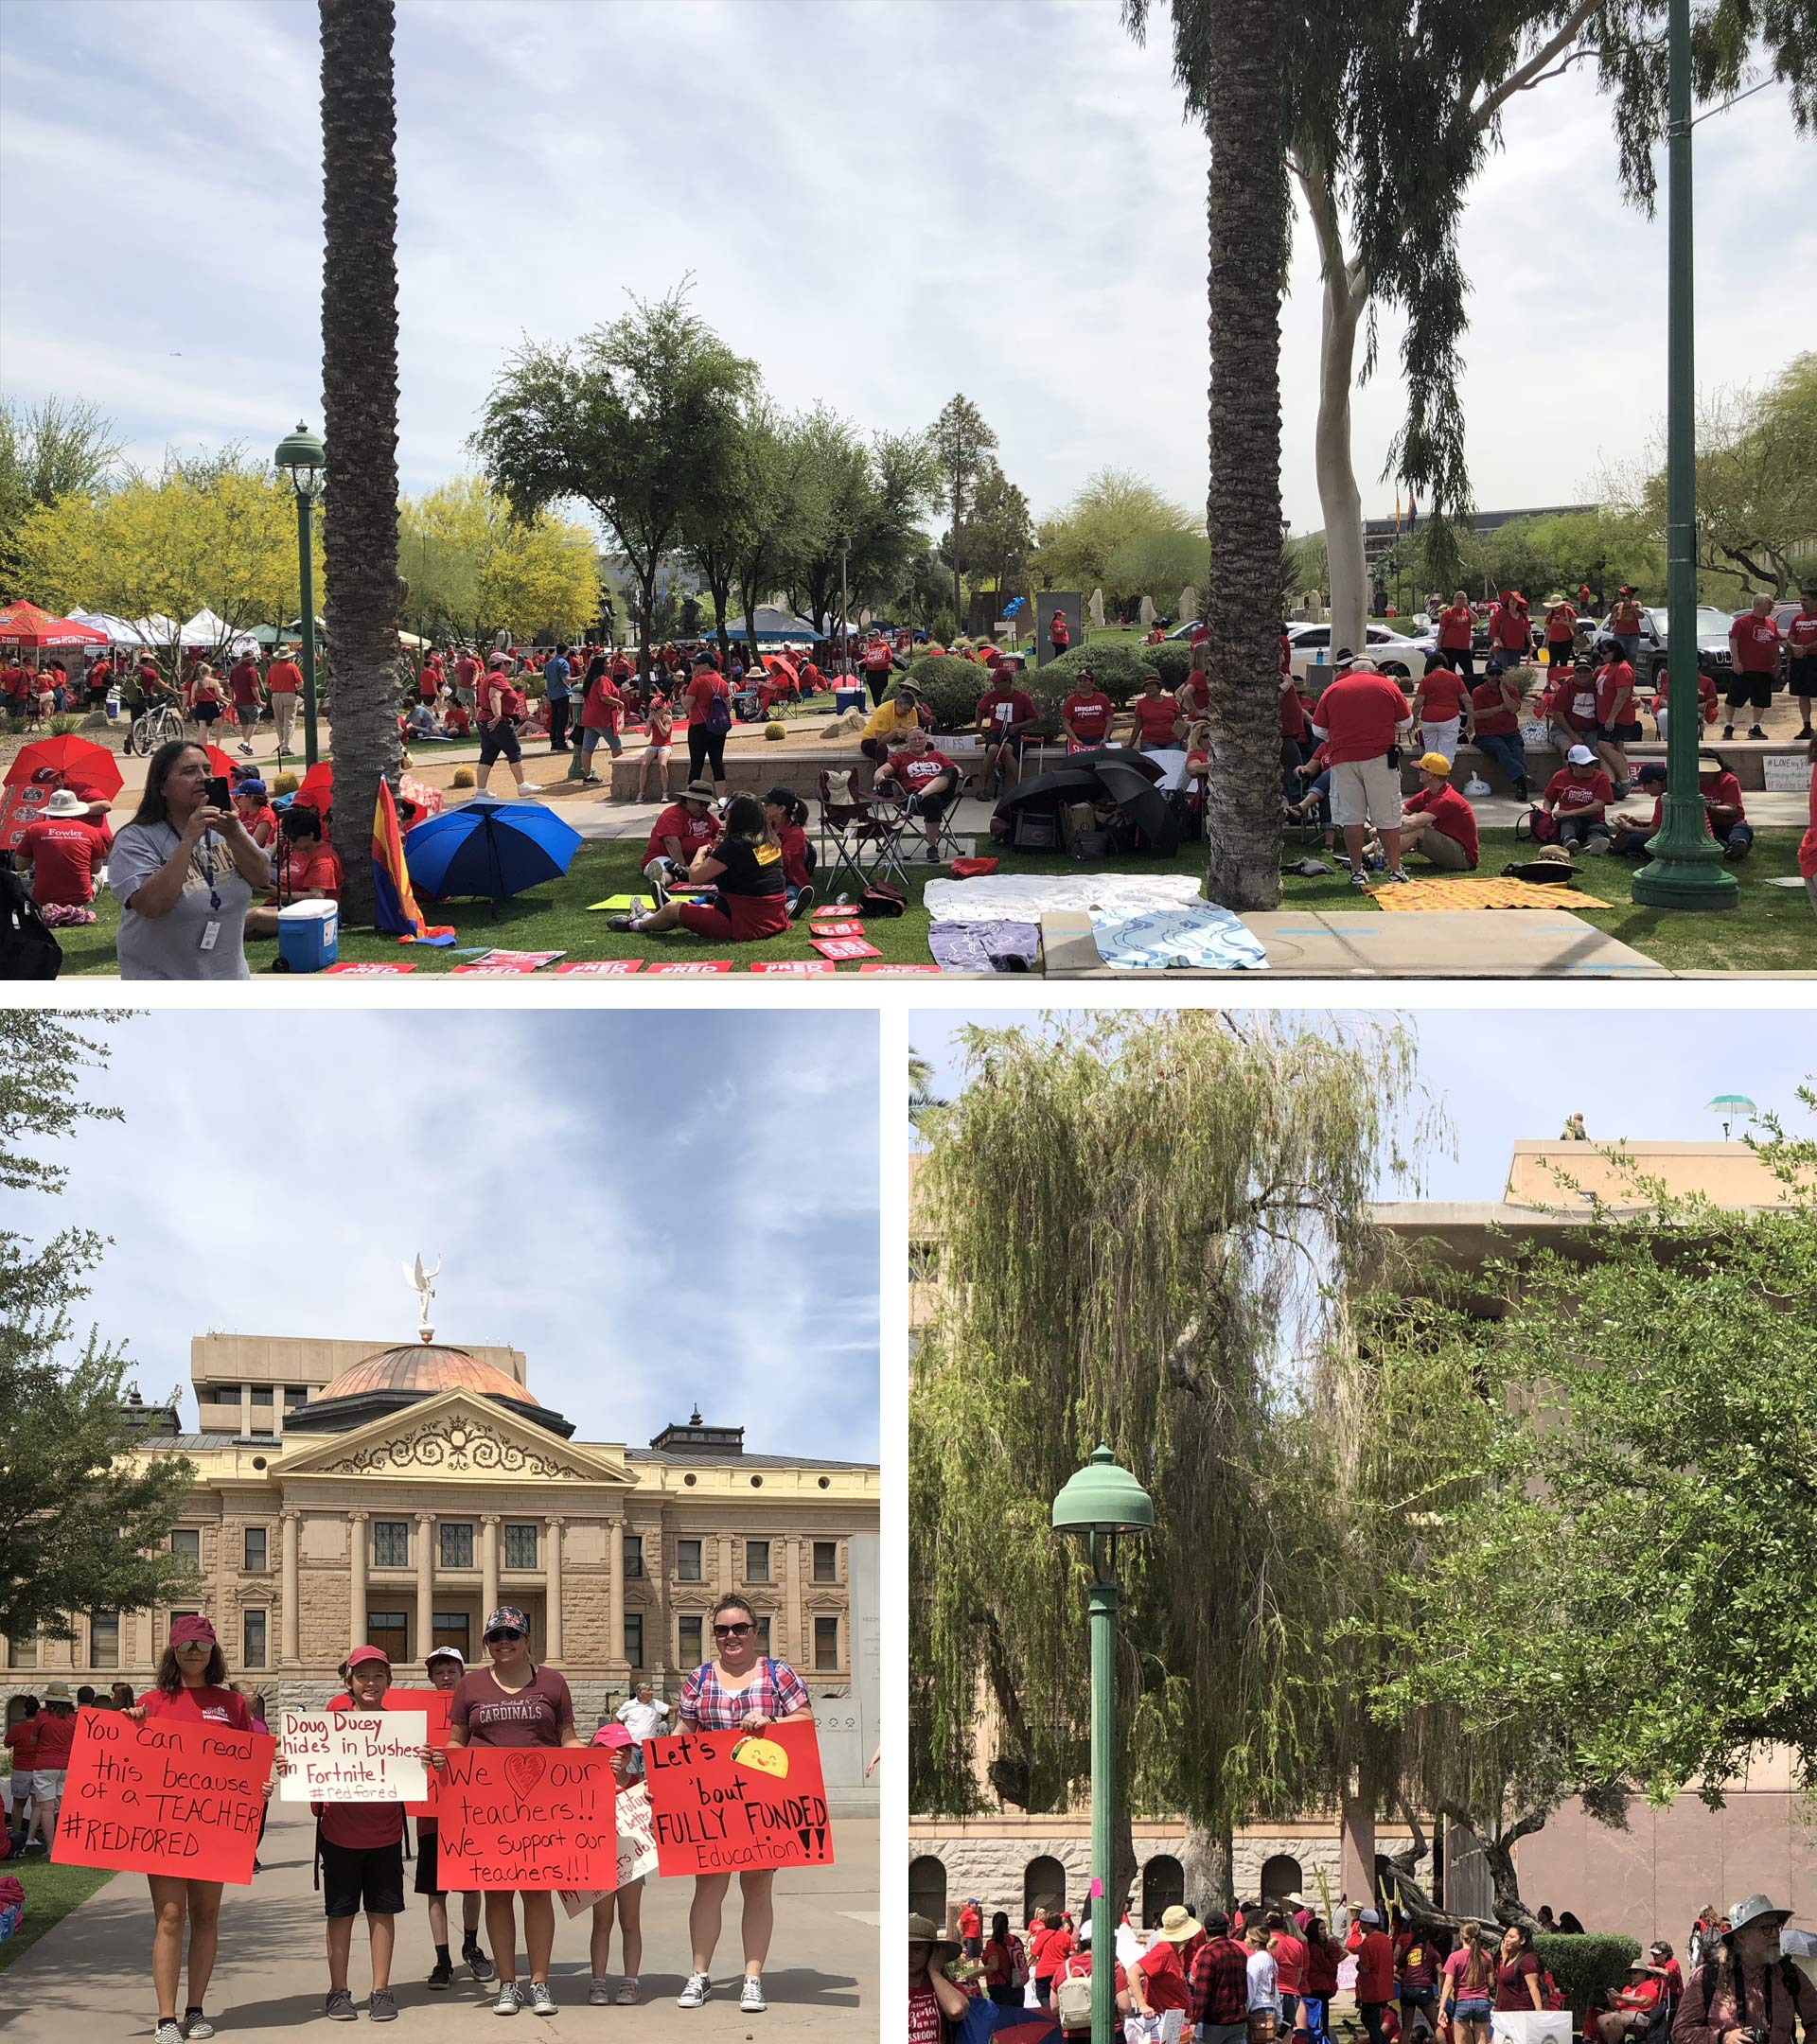 Morning redfored protests trip unsized